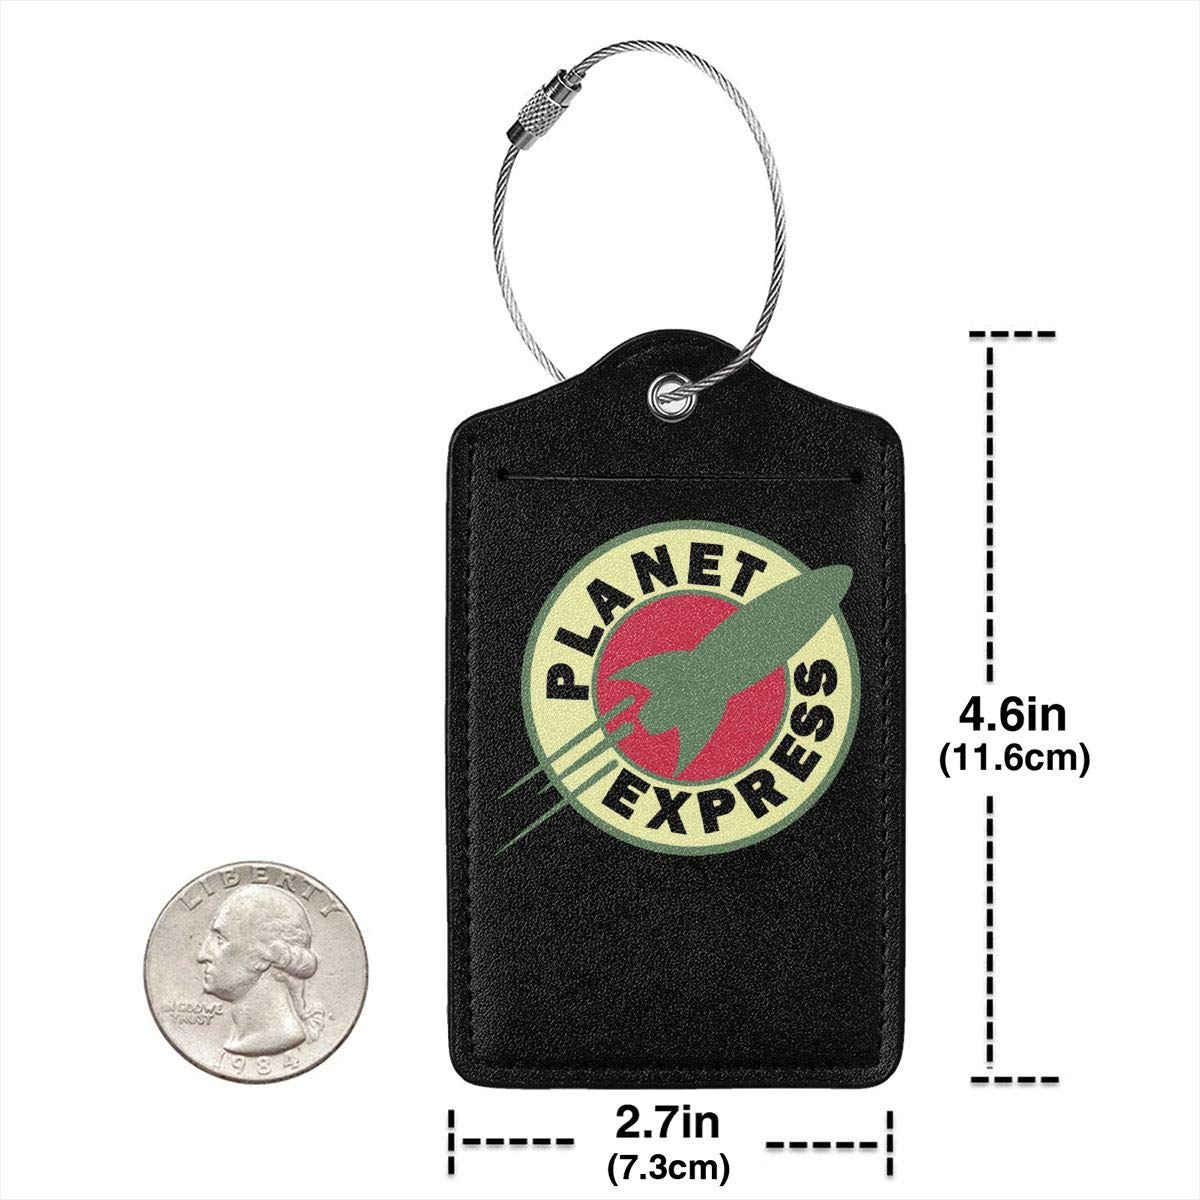 Planet Express Leather Luggage Tag Travel ID Label For Baggage Suitcase